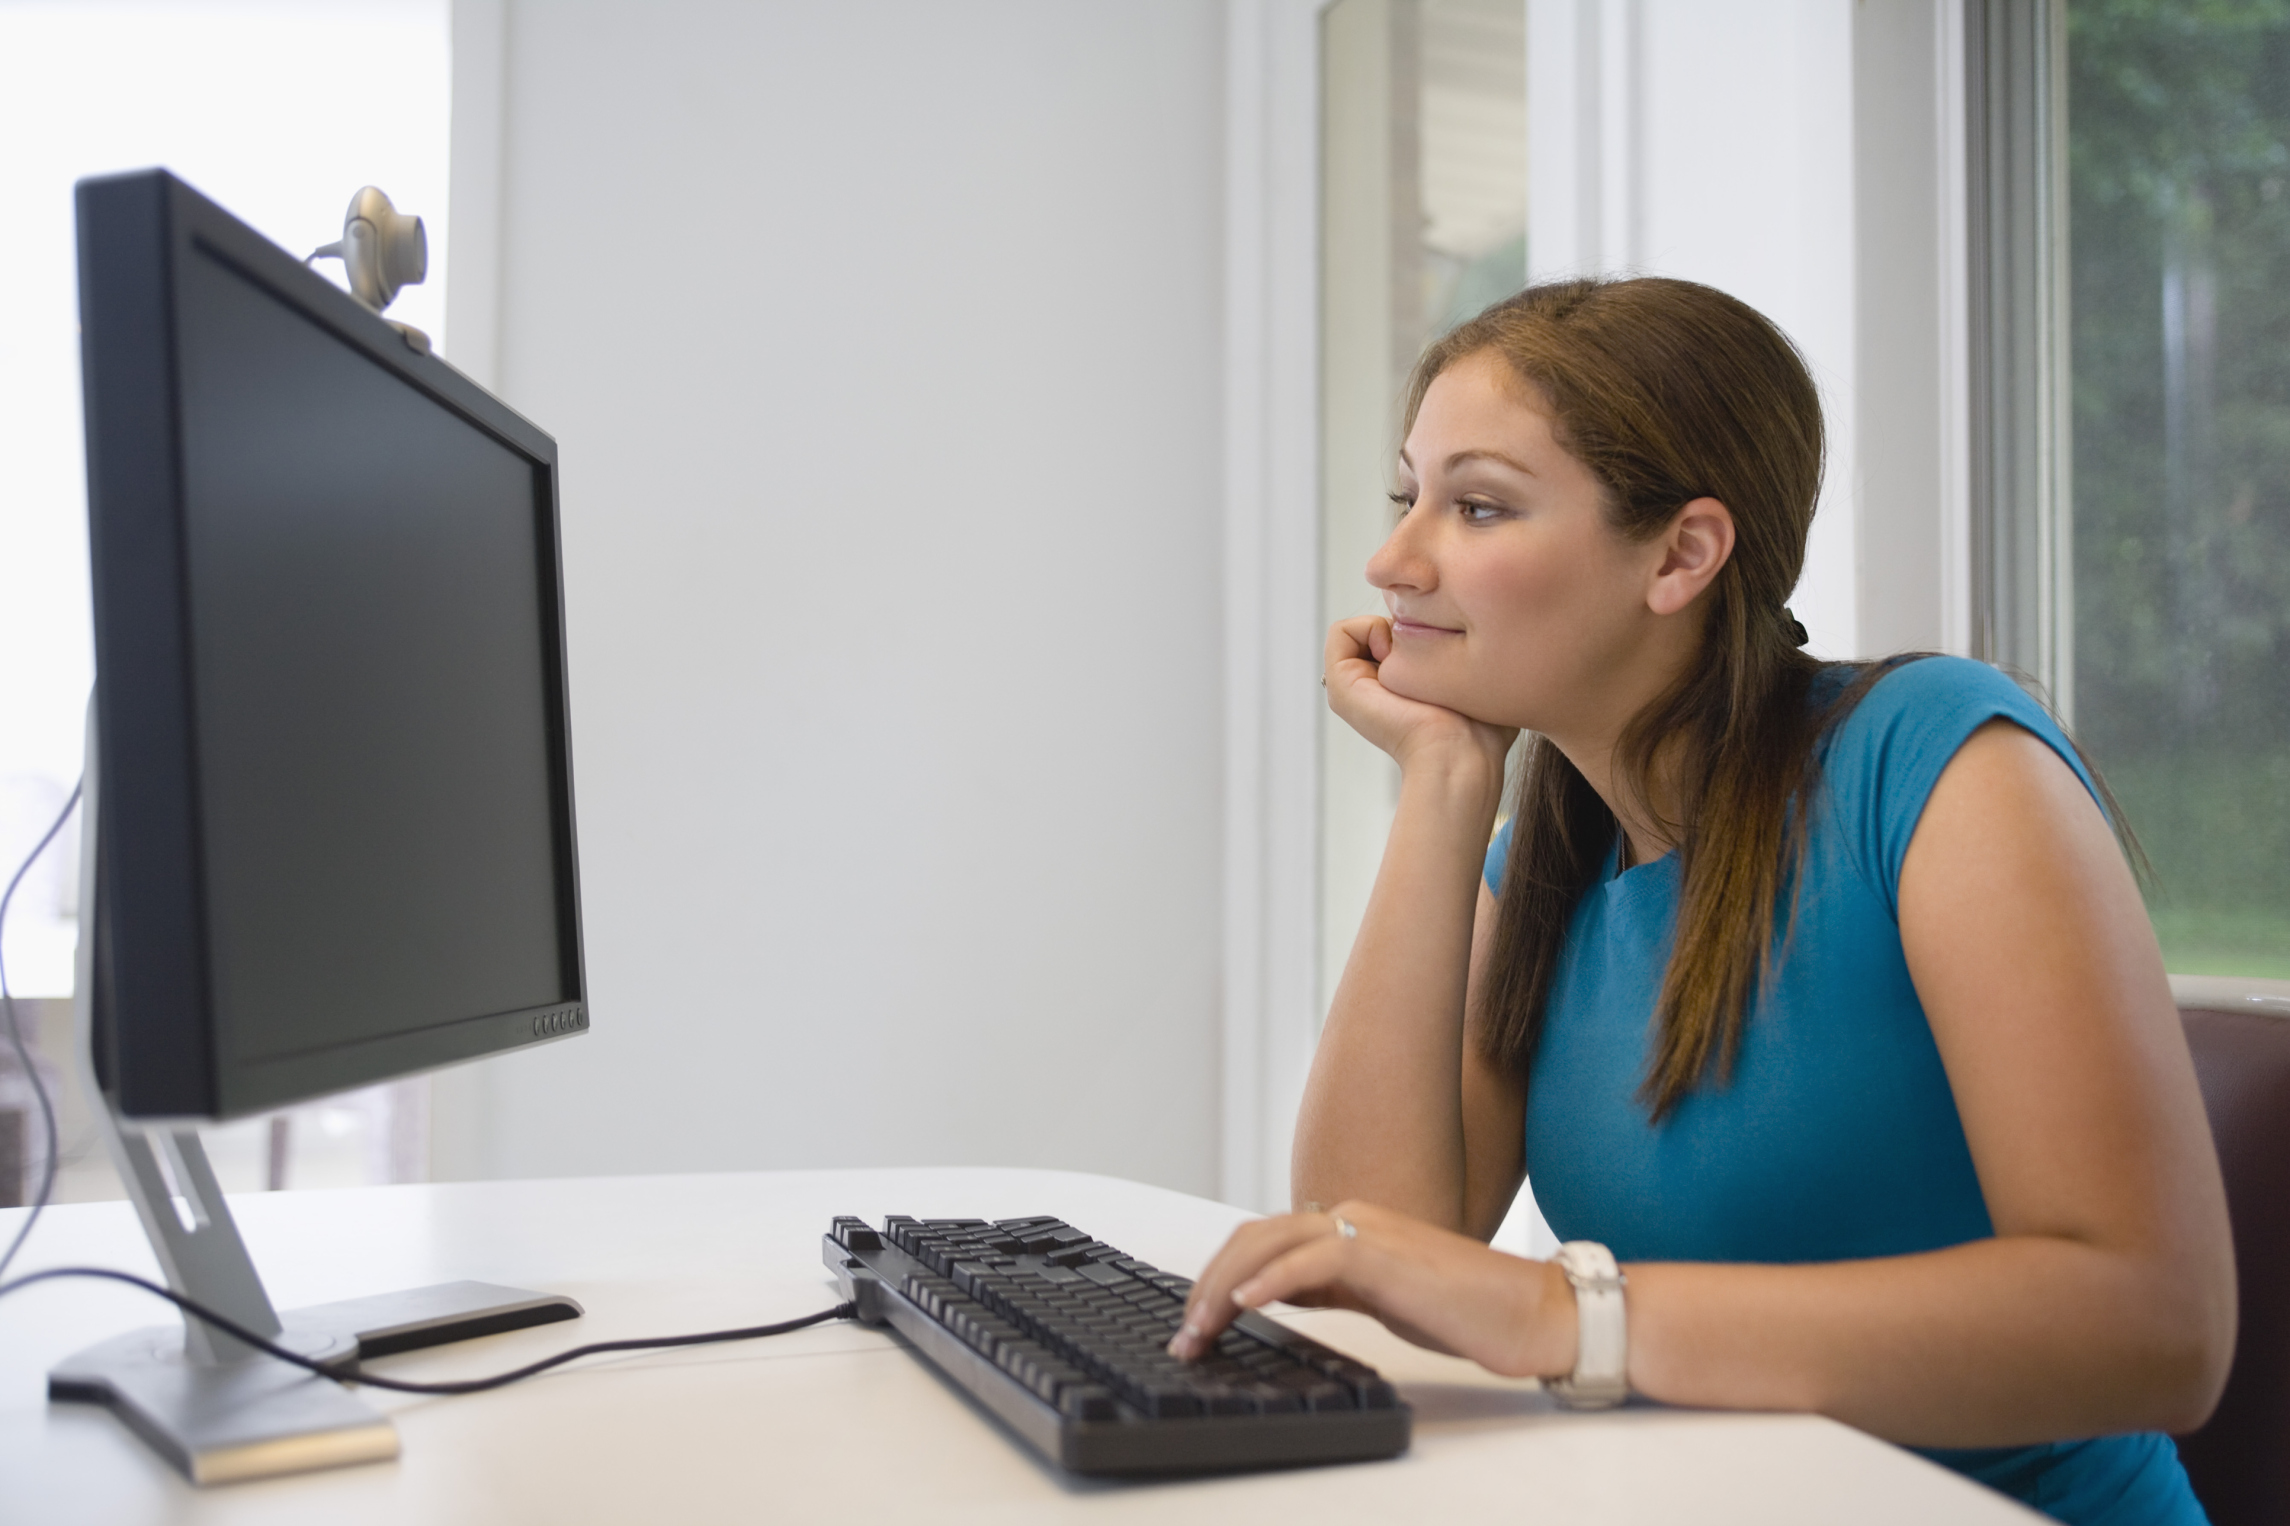 Teen using computer and pointy